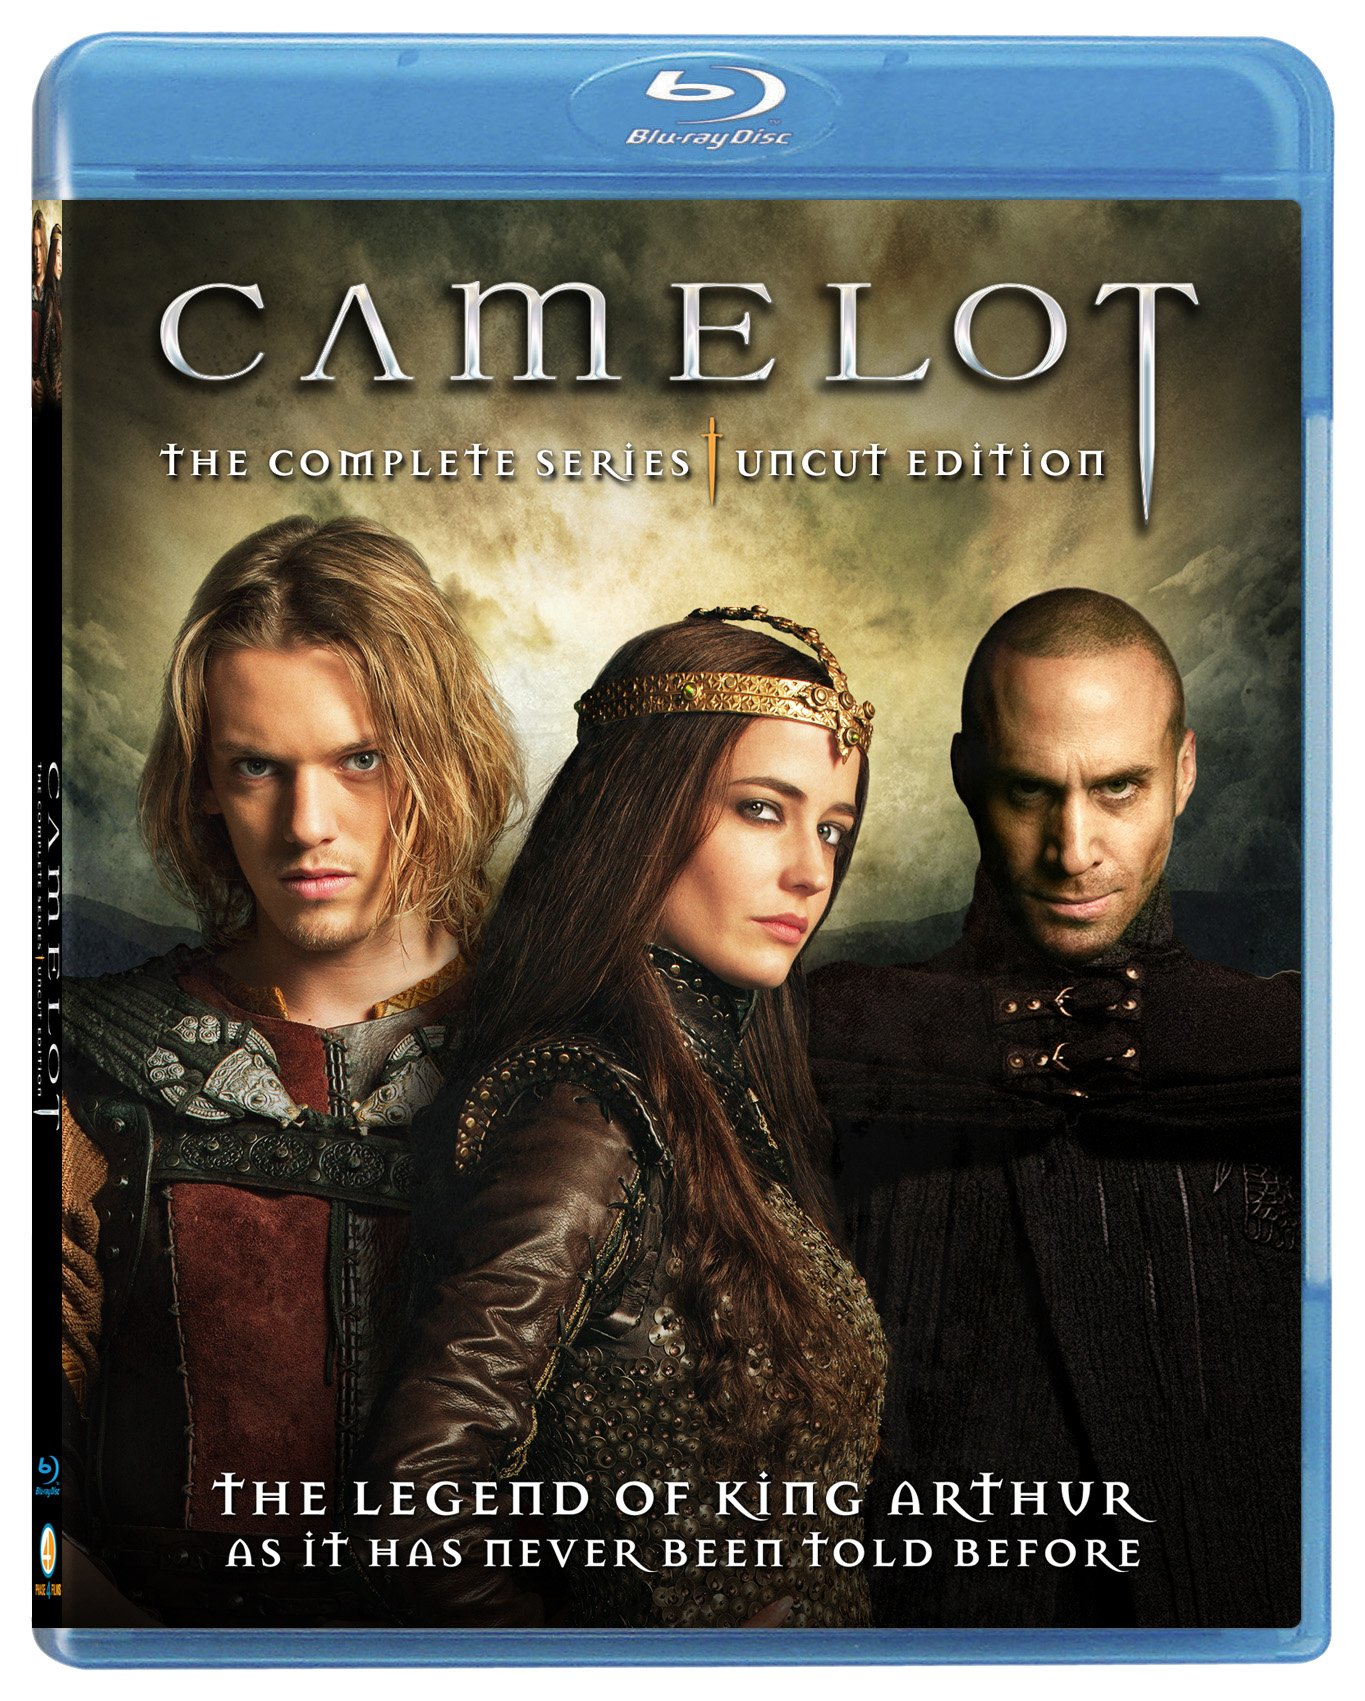 Camelot - The Complete Series [Uncut Edition] (Blu-ray)